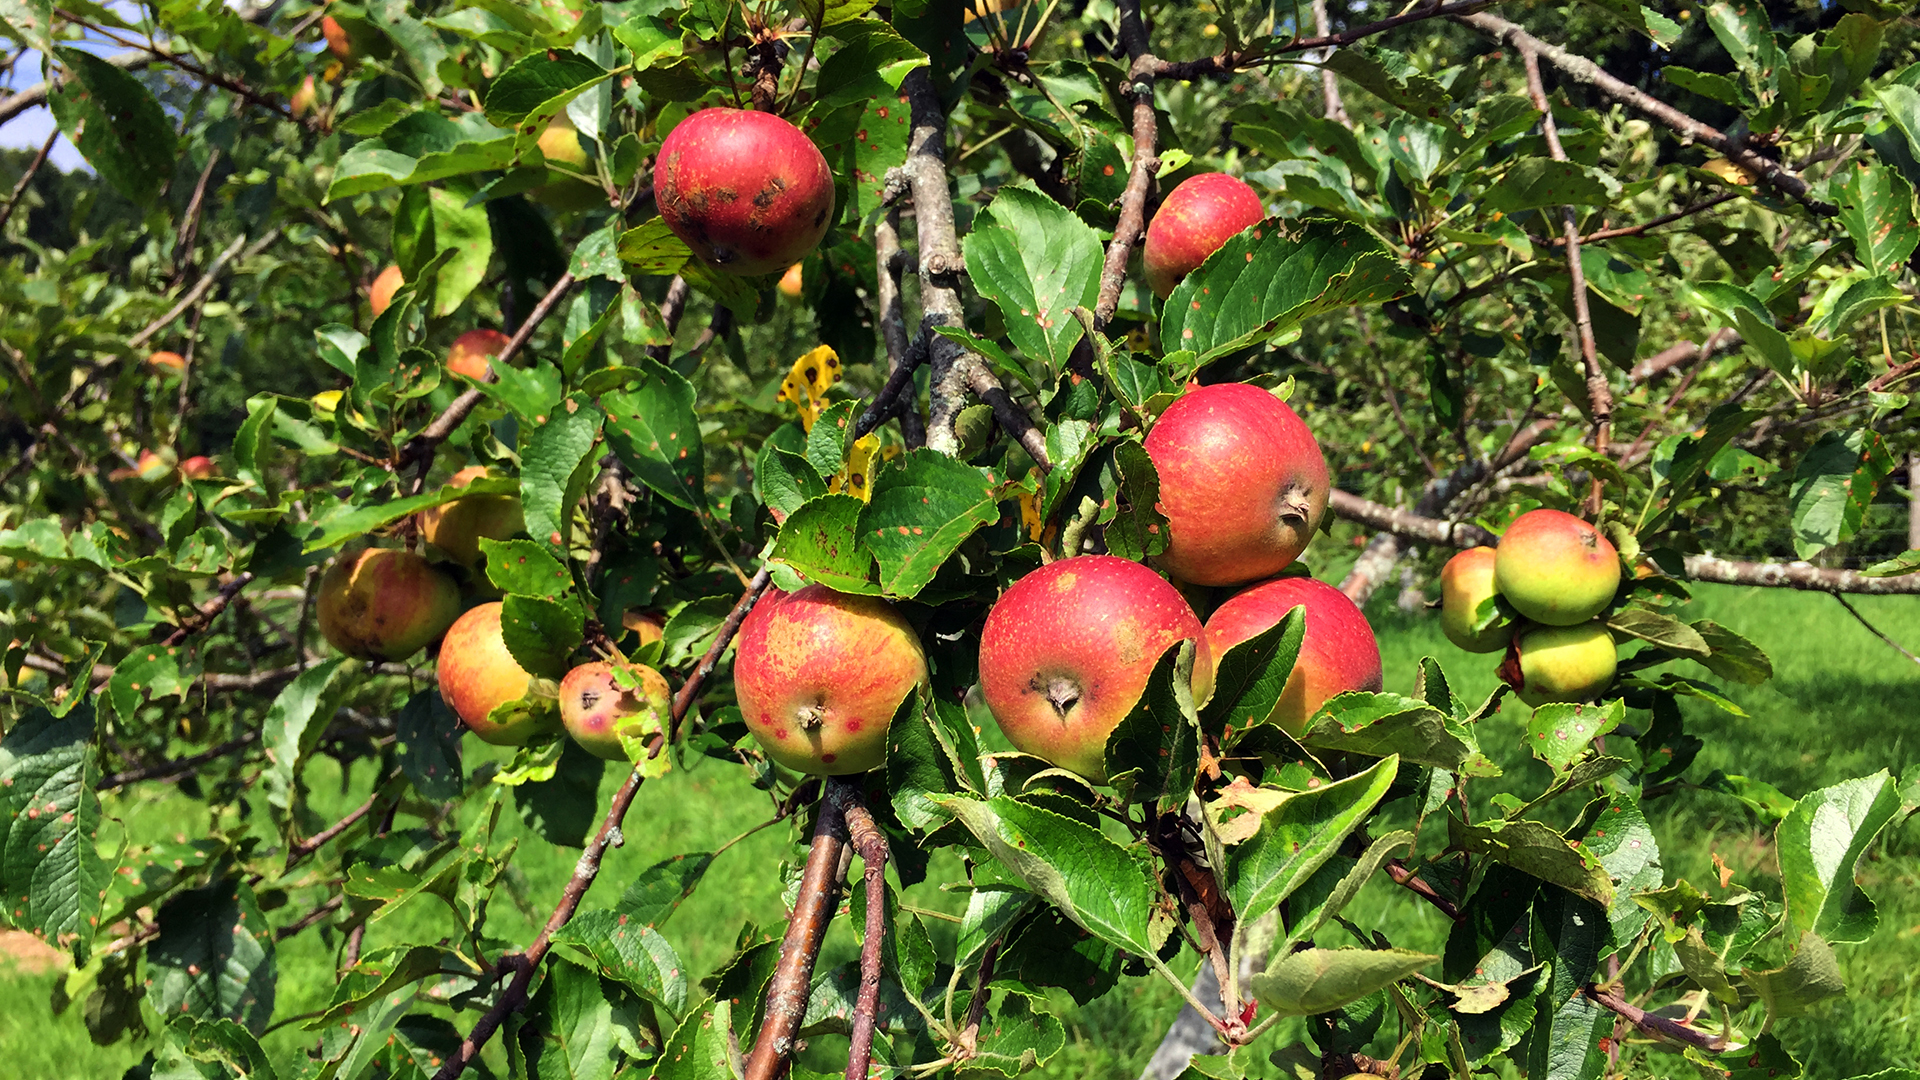 Apples in Orchard - Bright - Full Width Image